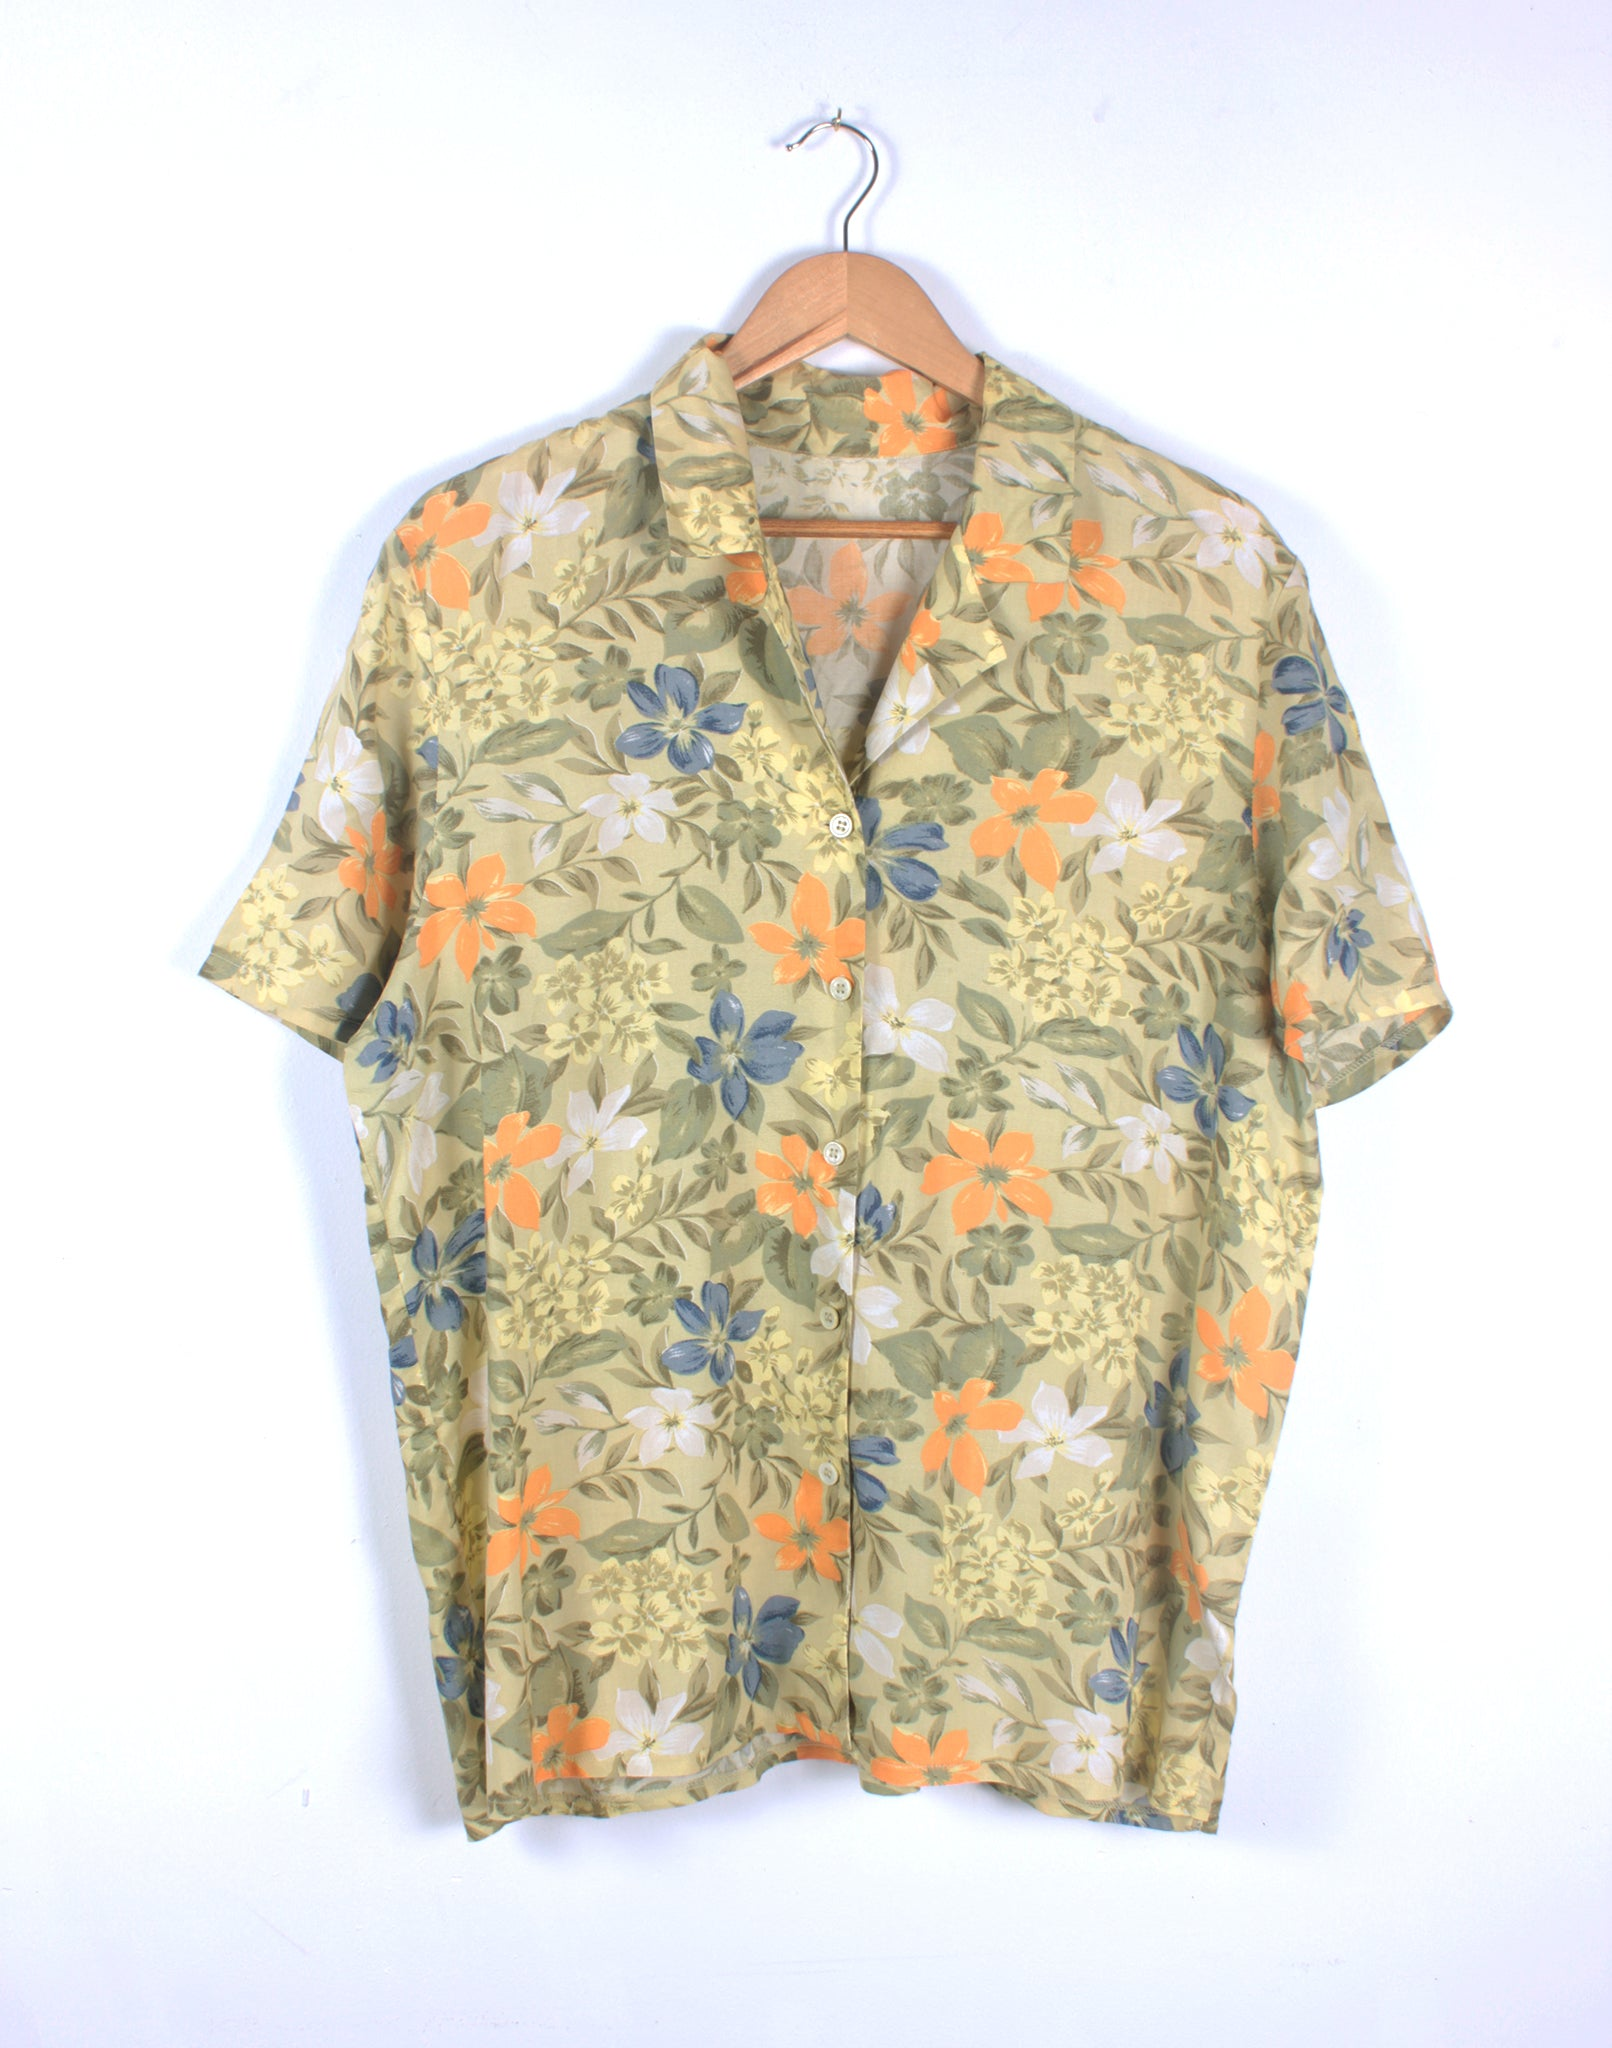 Vintage 90's Oversize Green Orange Floral Shirt